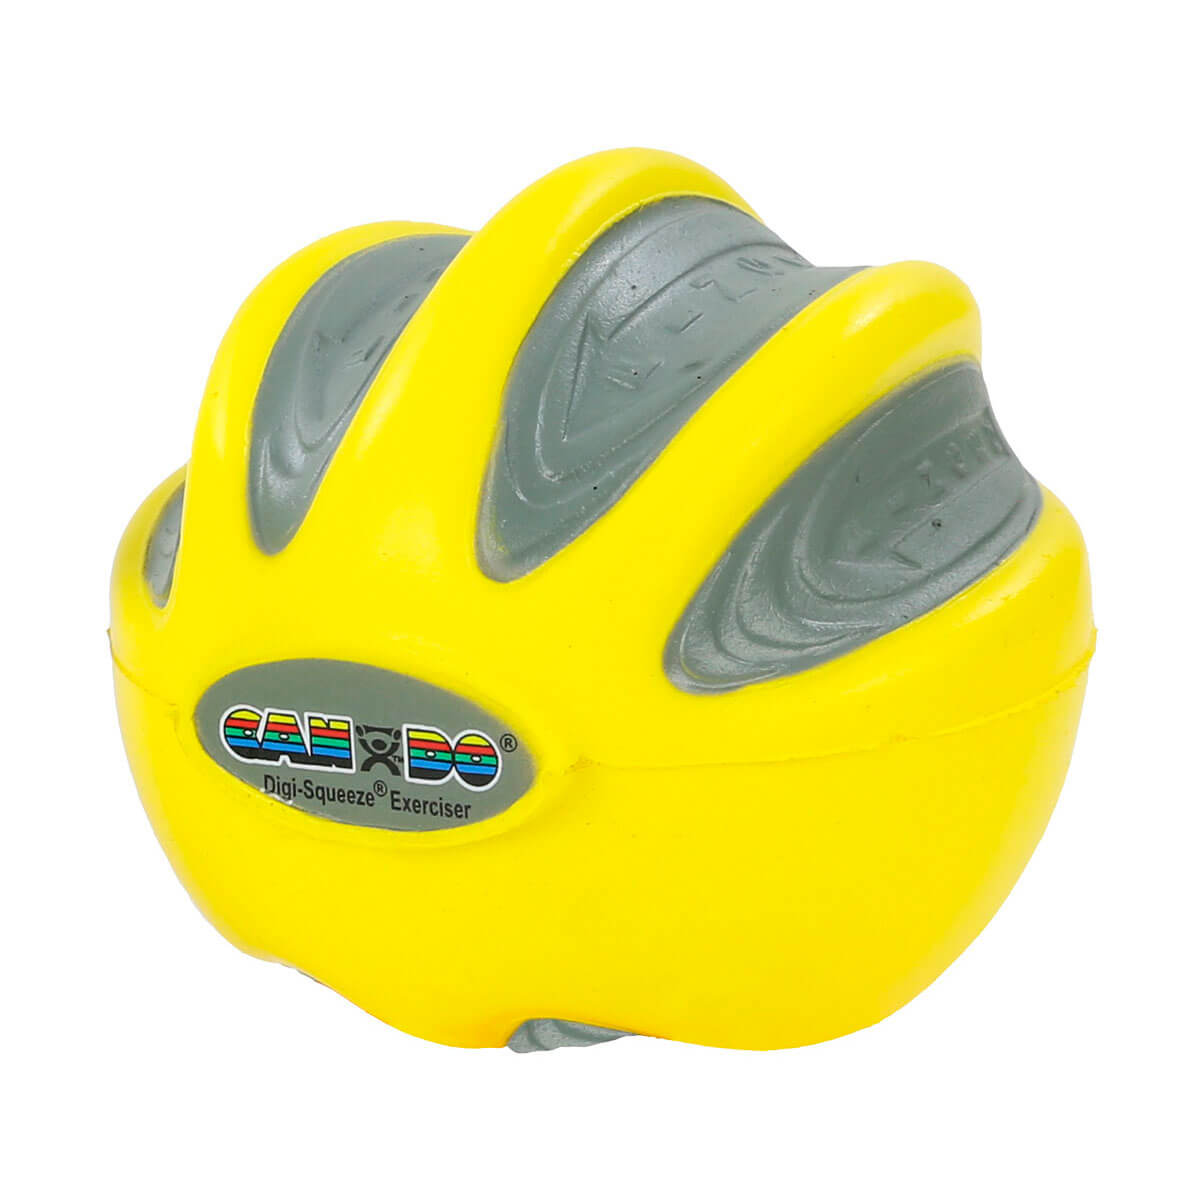 CanDo® Digi-Squeeze® Hand-Exerciser small yellow